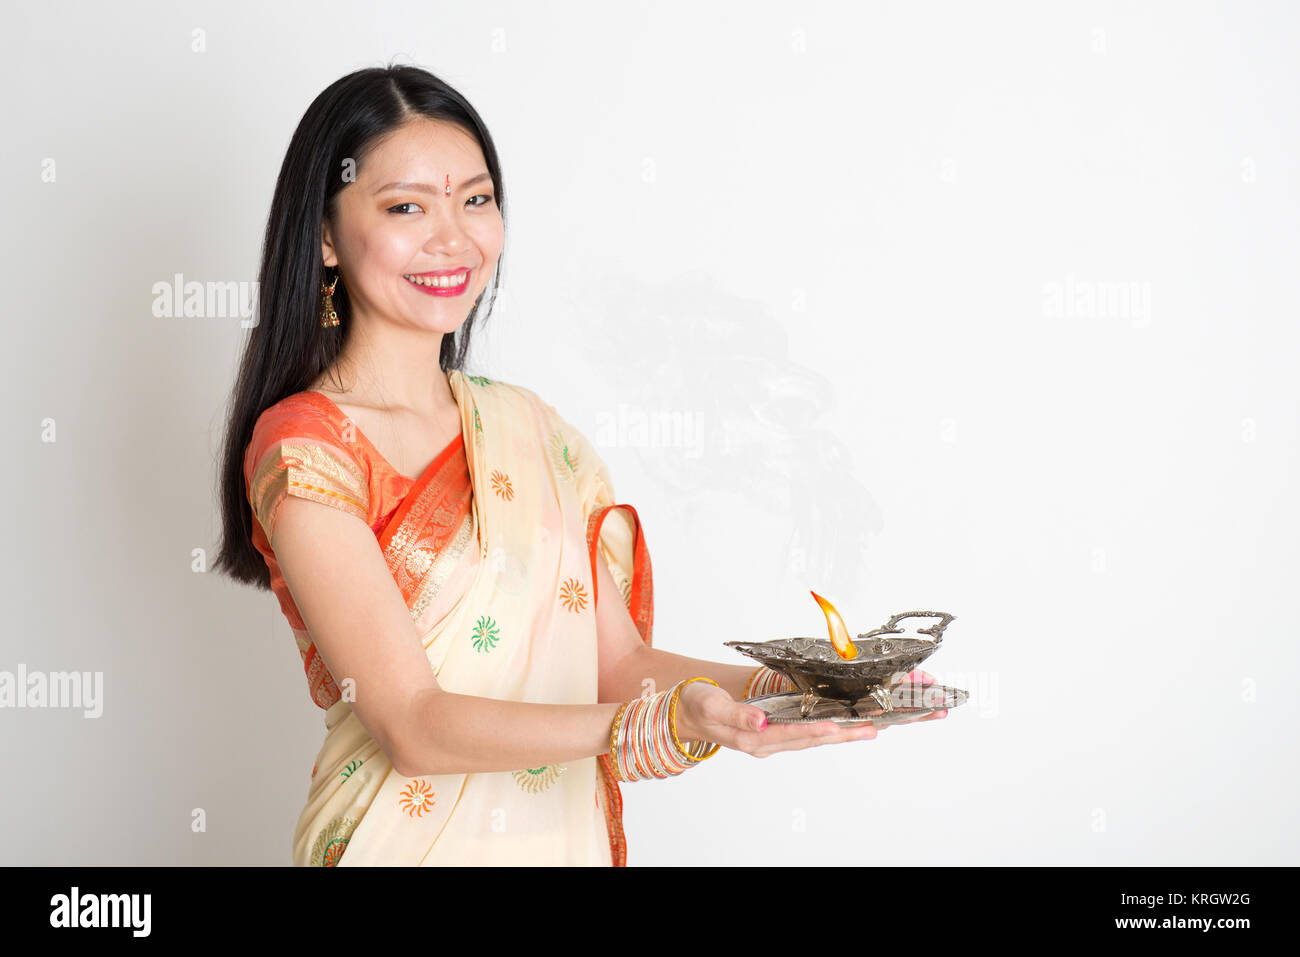 Portrait Girl Holding Oil Lamp Stock Photos  for Girl Holding Lamp  257ylc